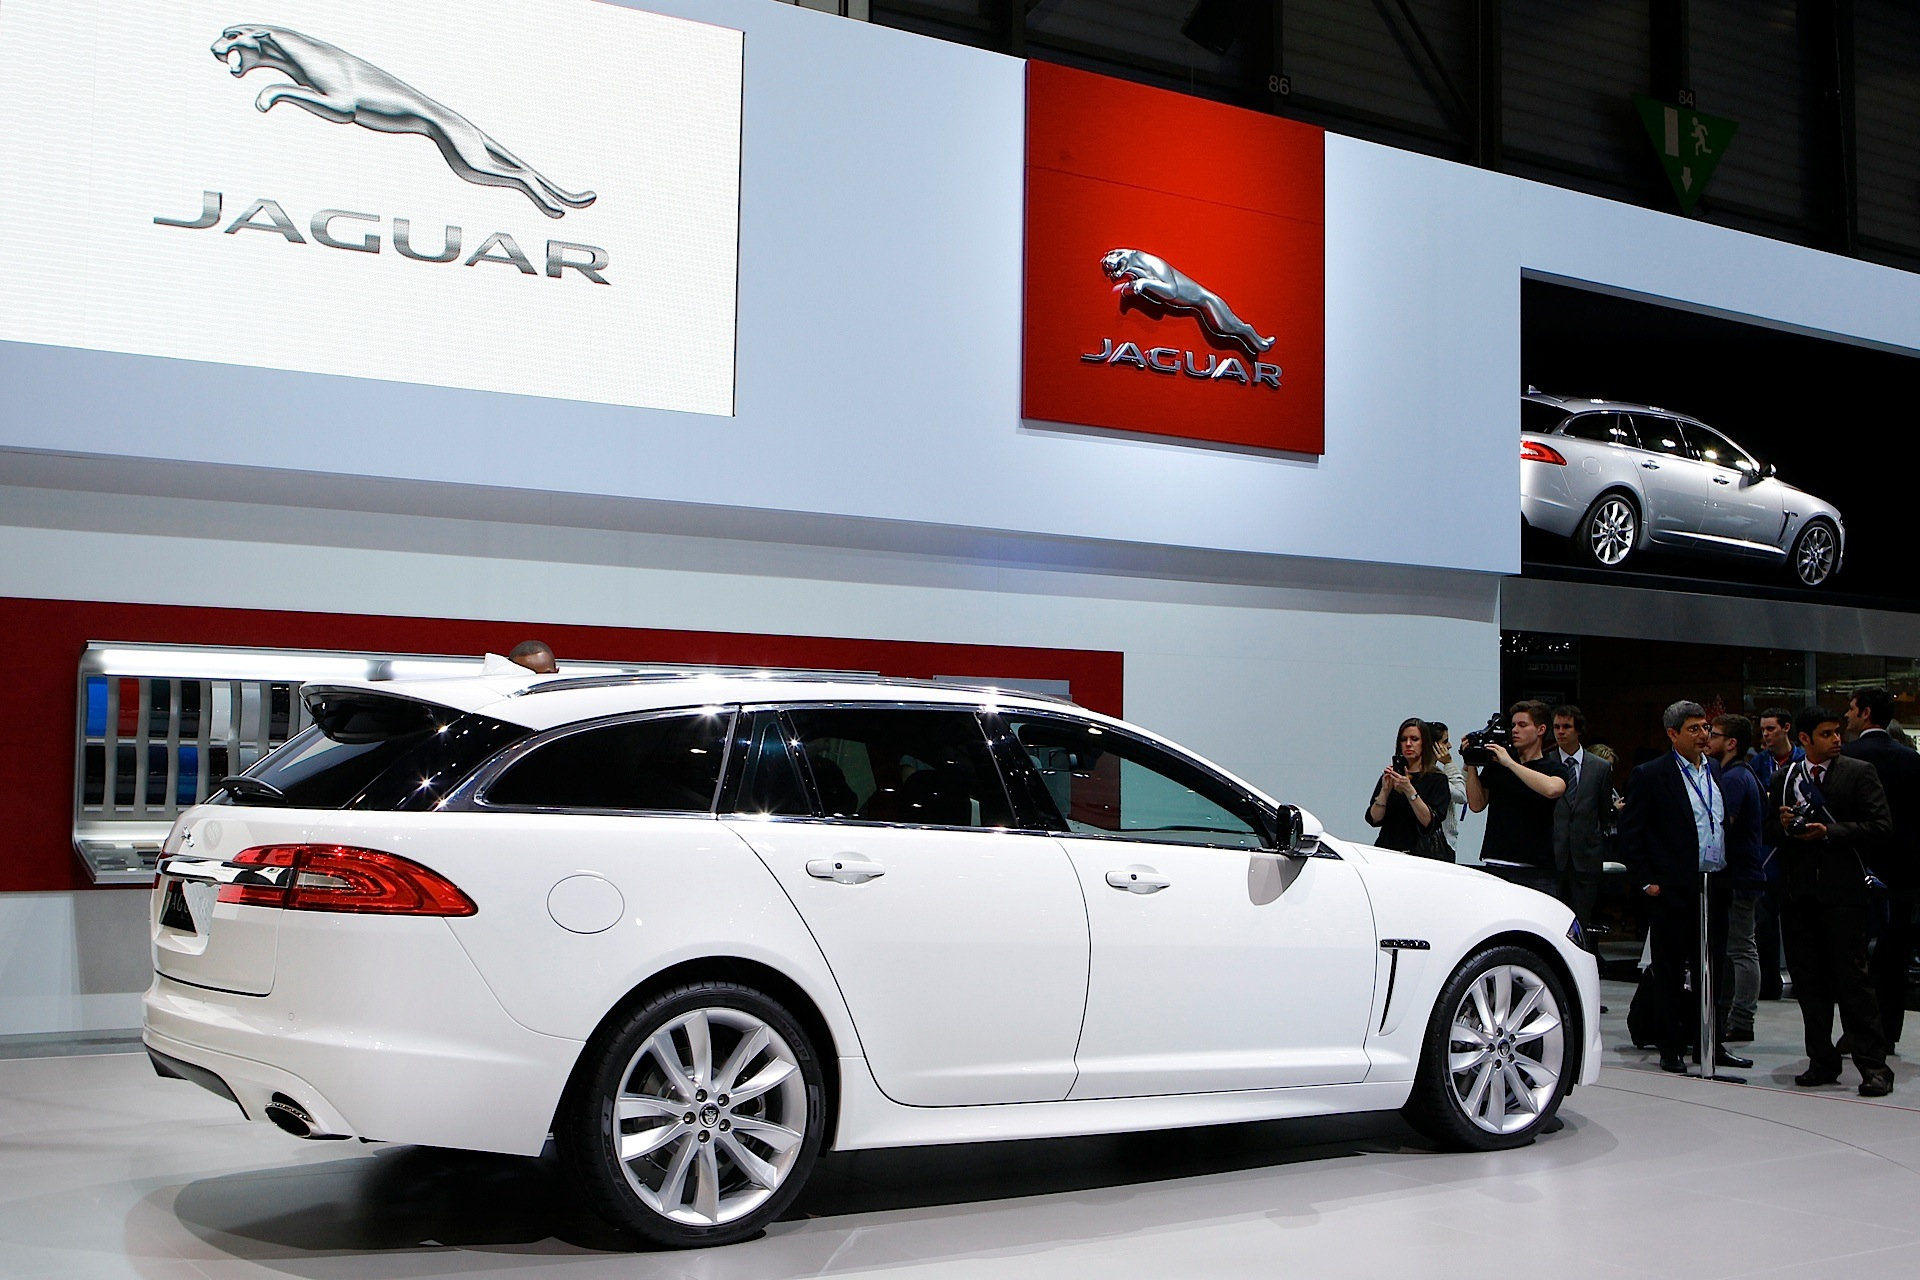 ny xf l near great stock price htm used neck c sale jaguar for sport